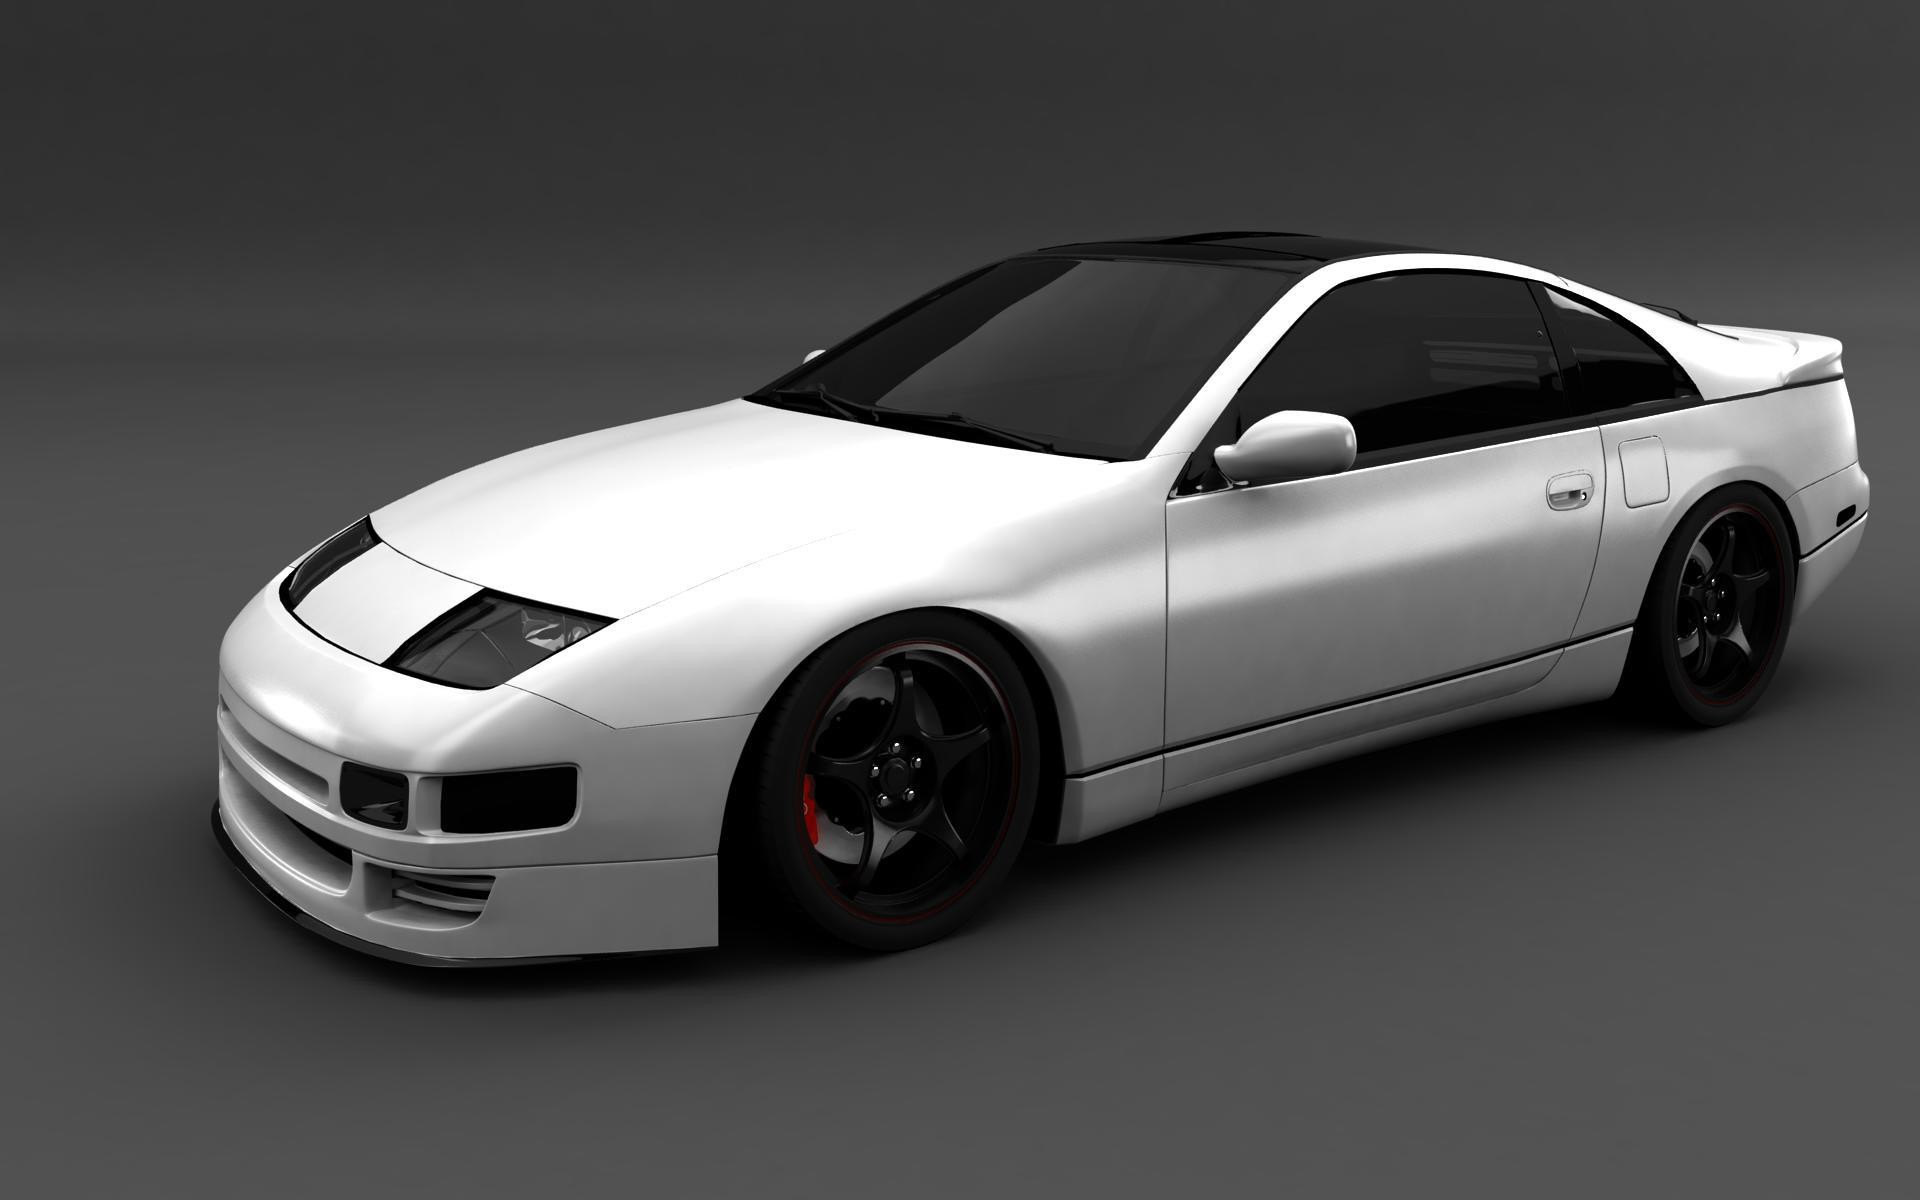 view image. Found on: 300zx-wallpaper